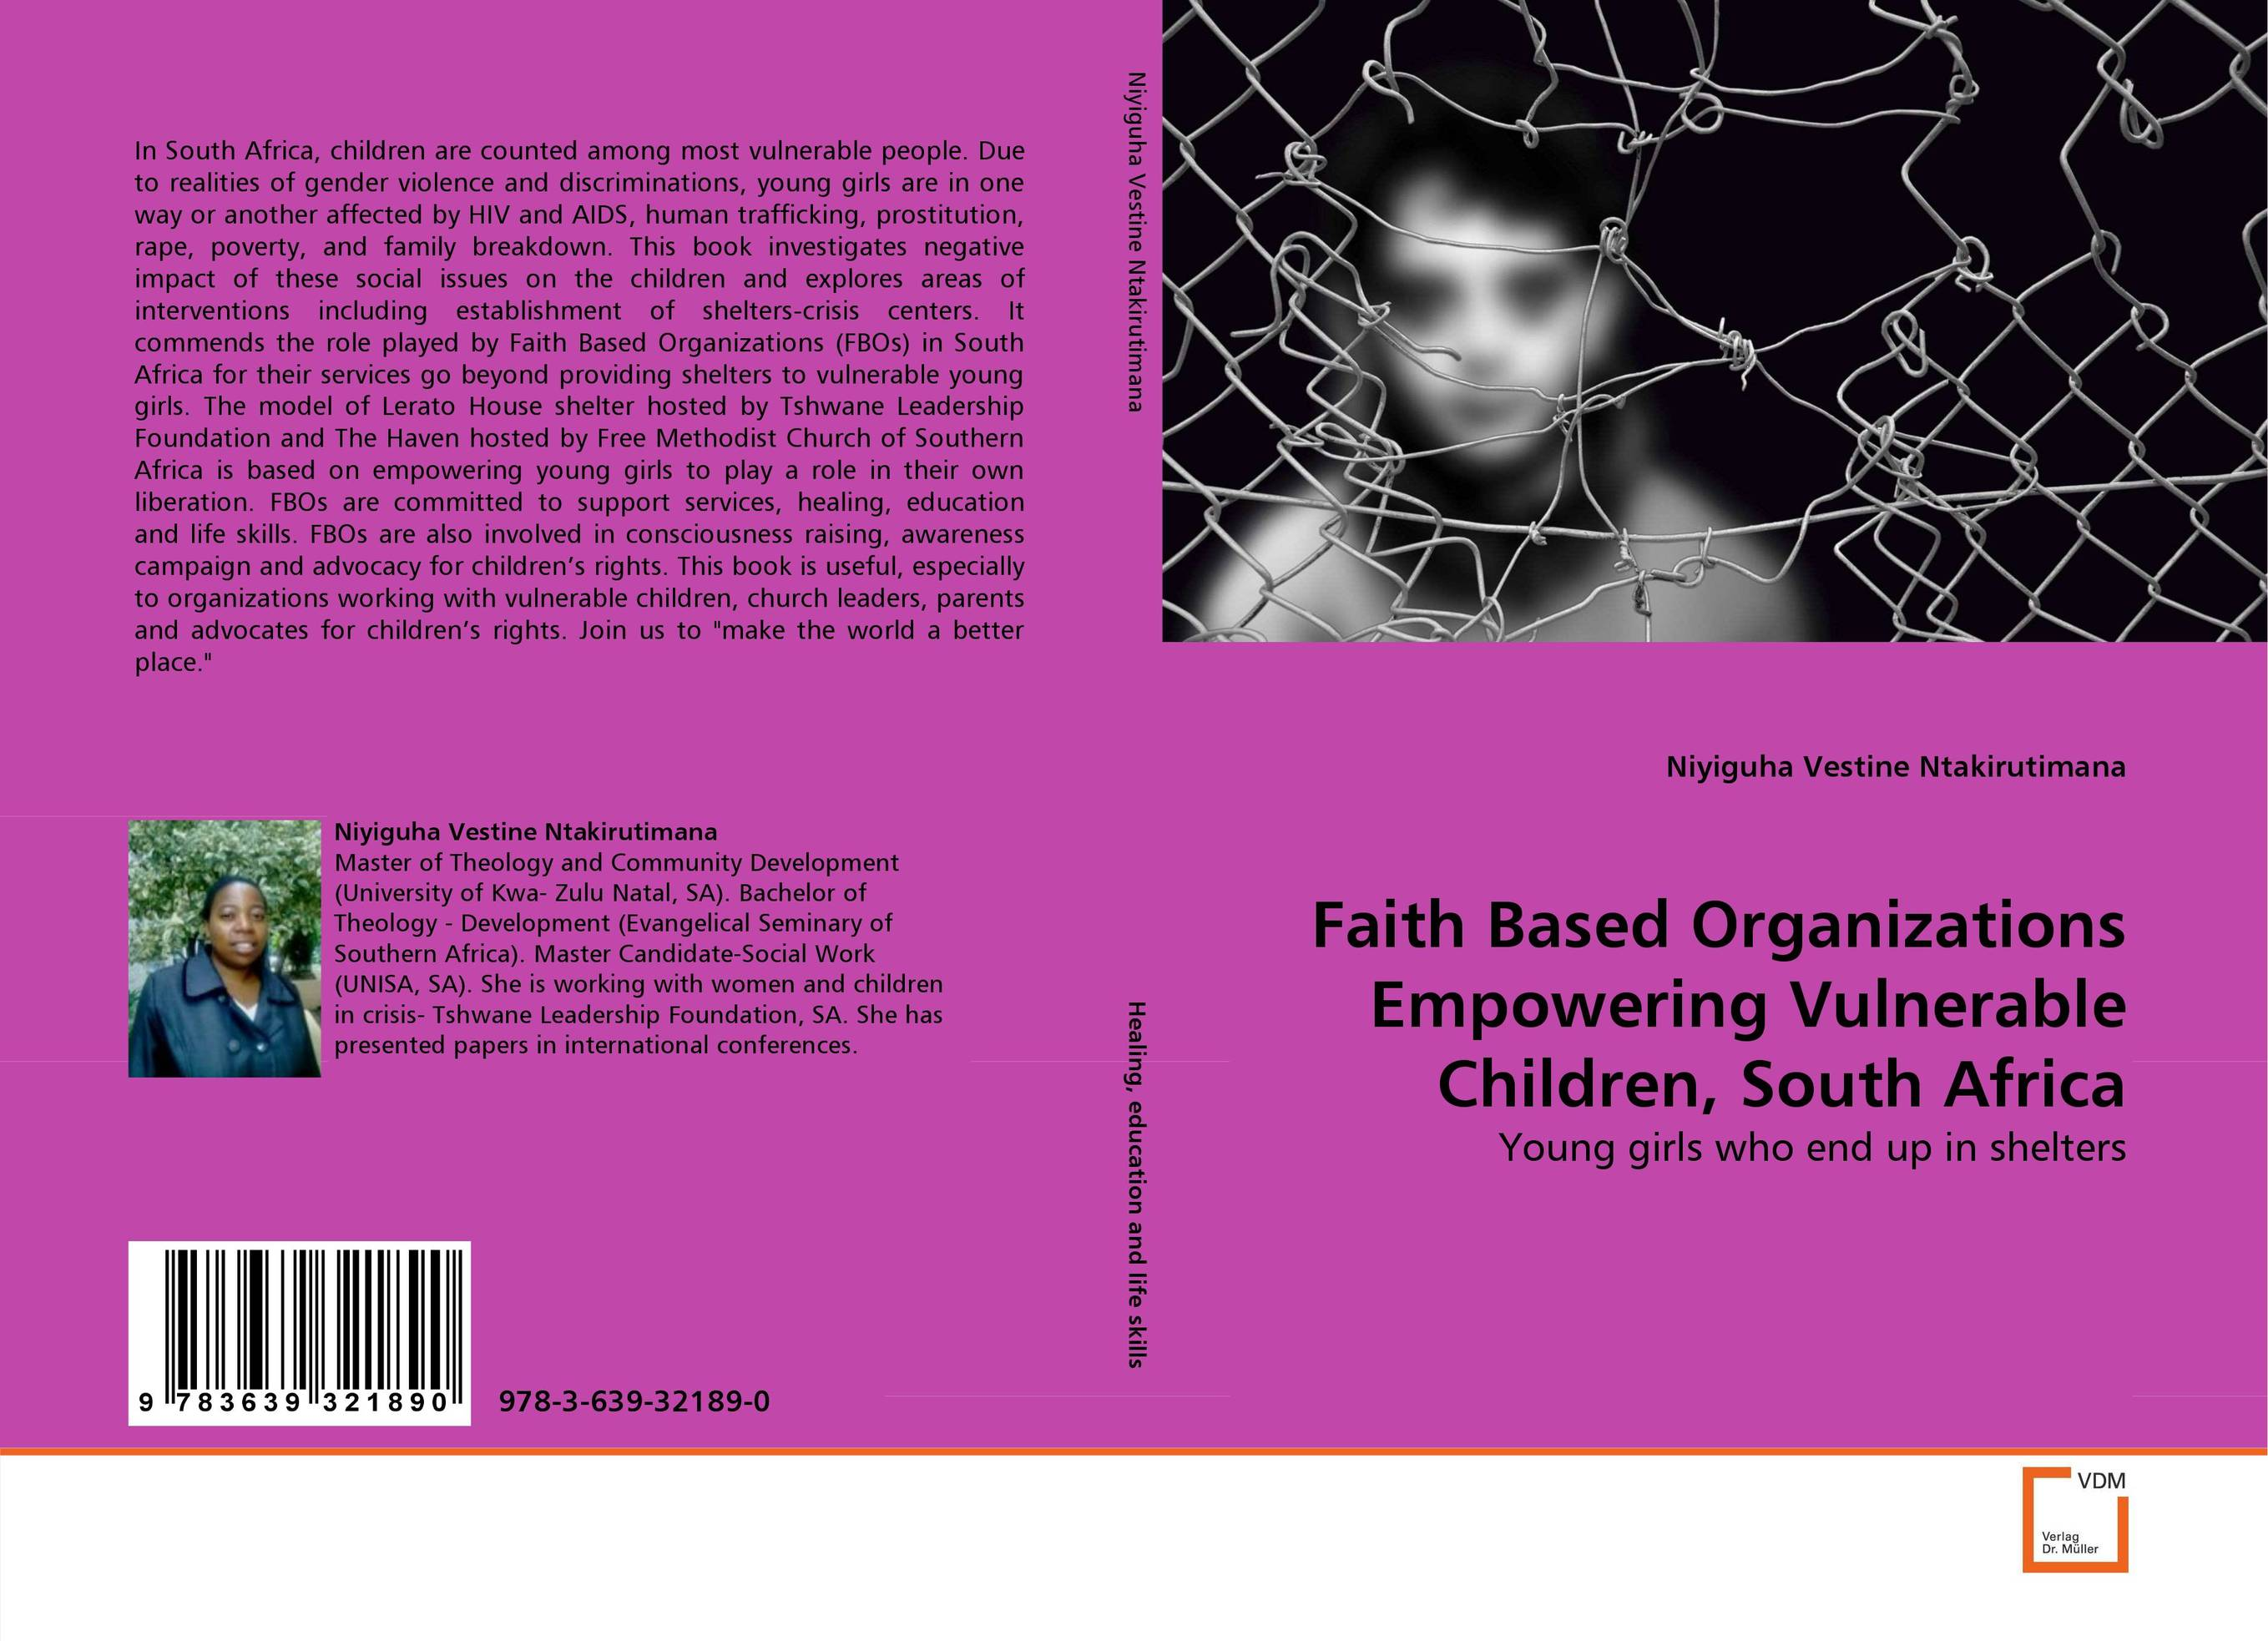 Faith Based Organizations Empowering Vulnerable Children, South Africa education of vulnerable children